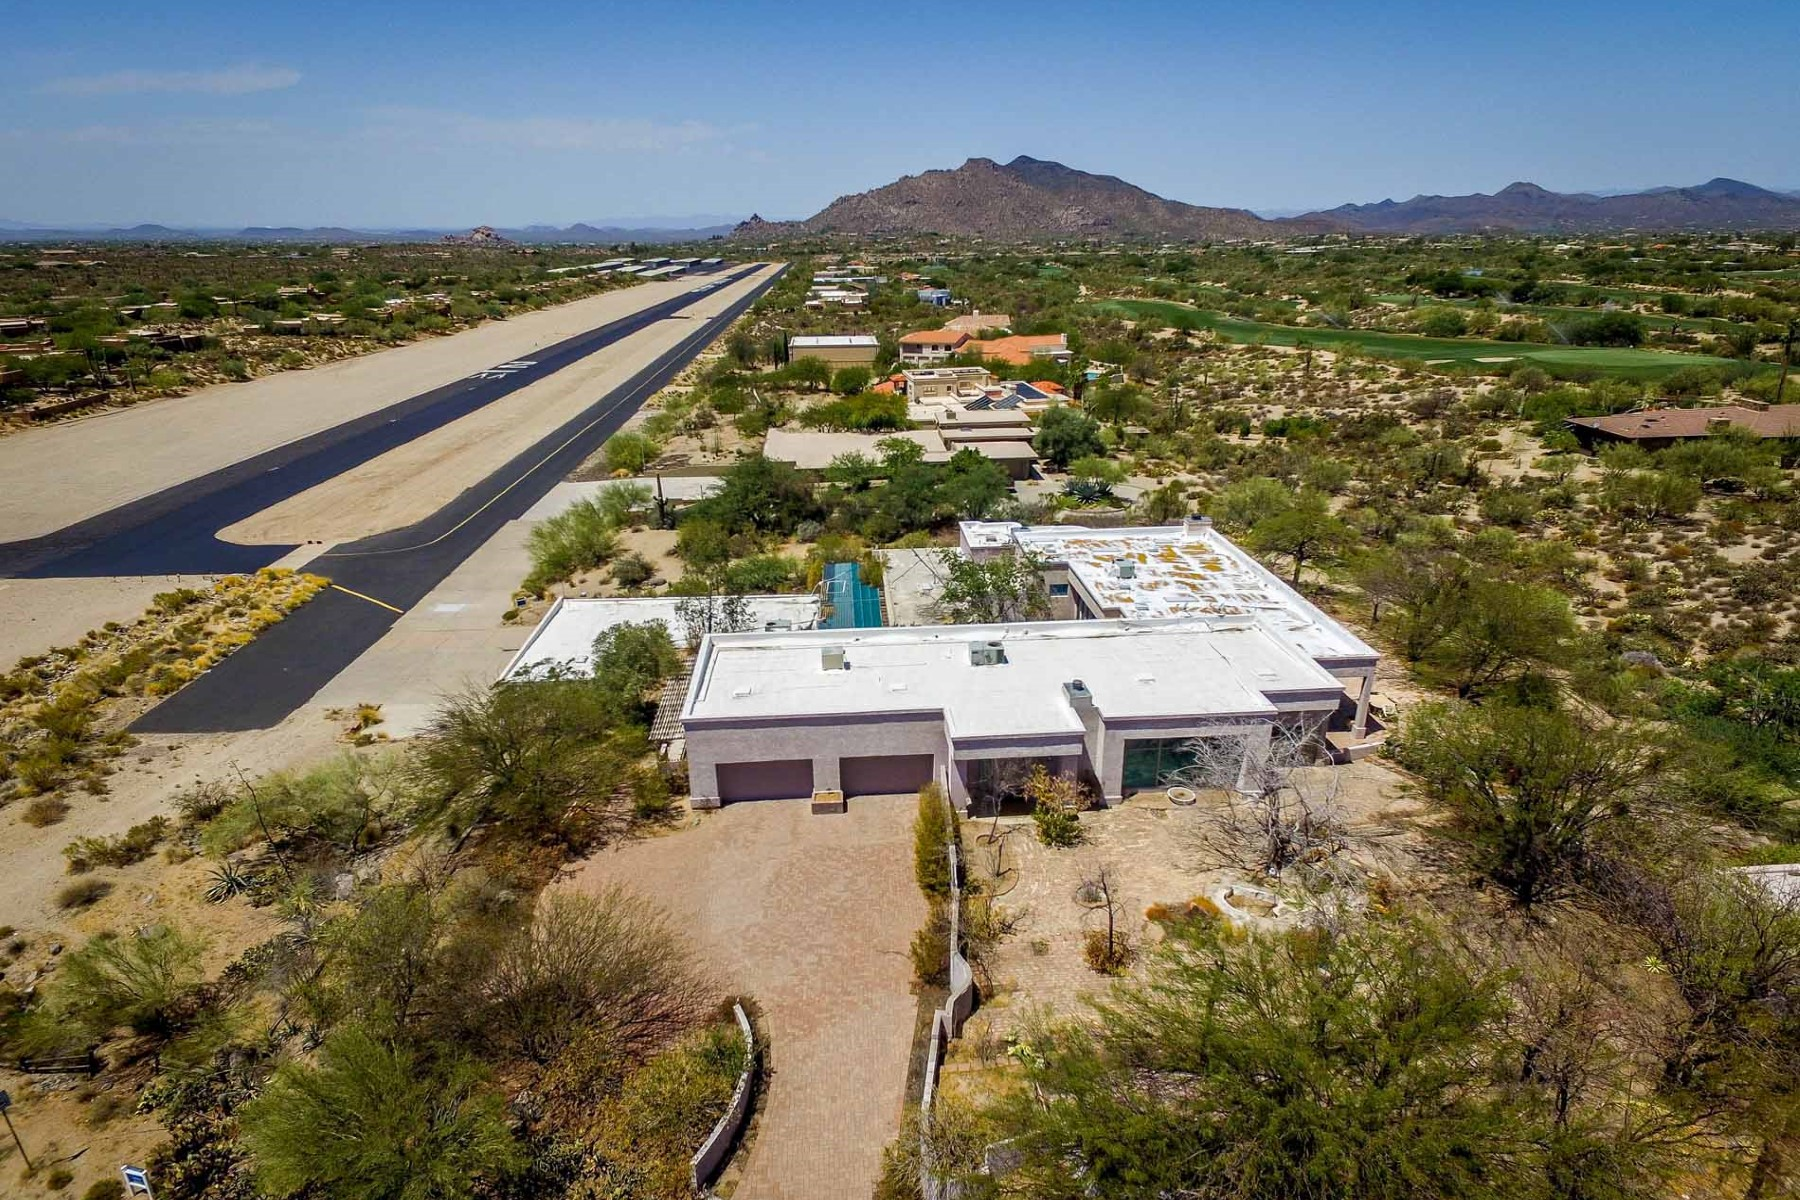 Single Family Home for Sale at Home on the Runway at Carefree Skyranch 37008 N Pima Rd Carefree, Arizona, 85377 United States